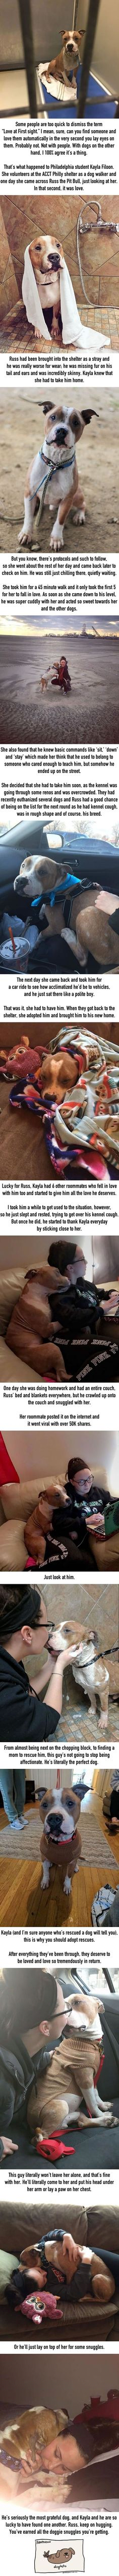 Woman adopts dog and it can't stop hugging her - Imgur